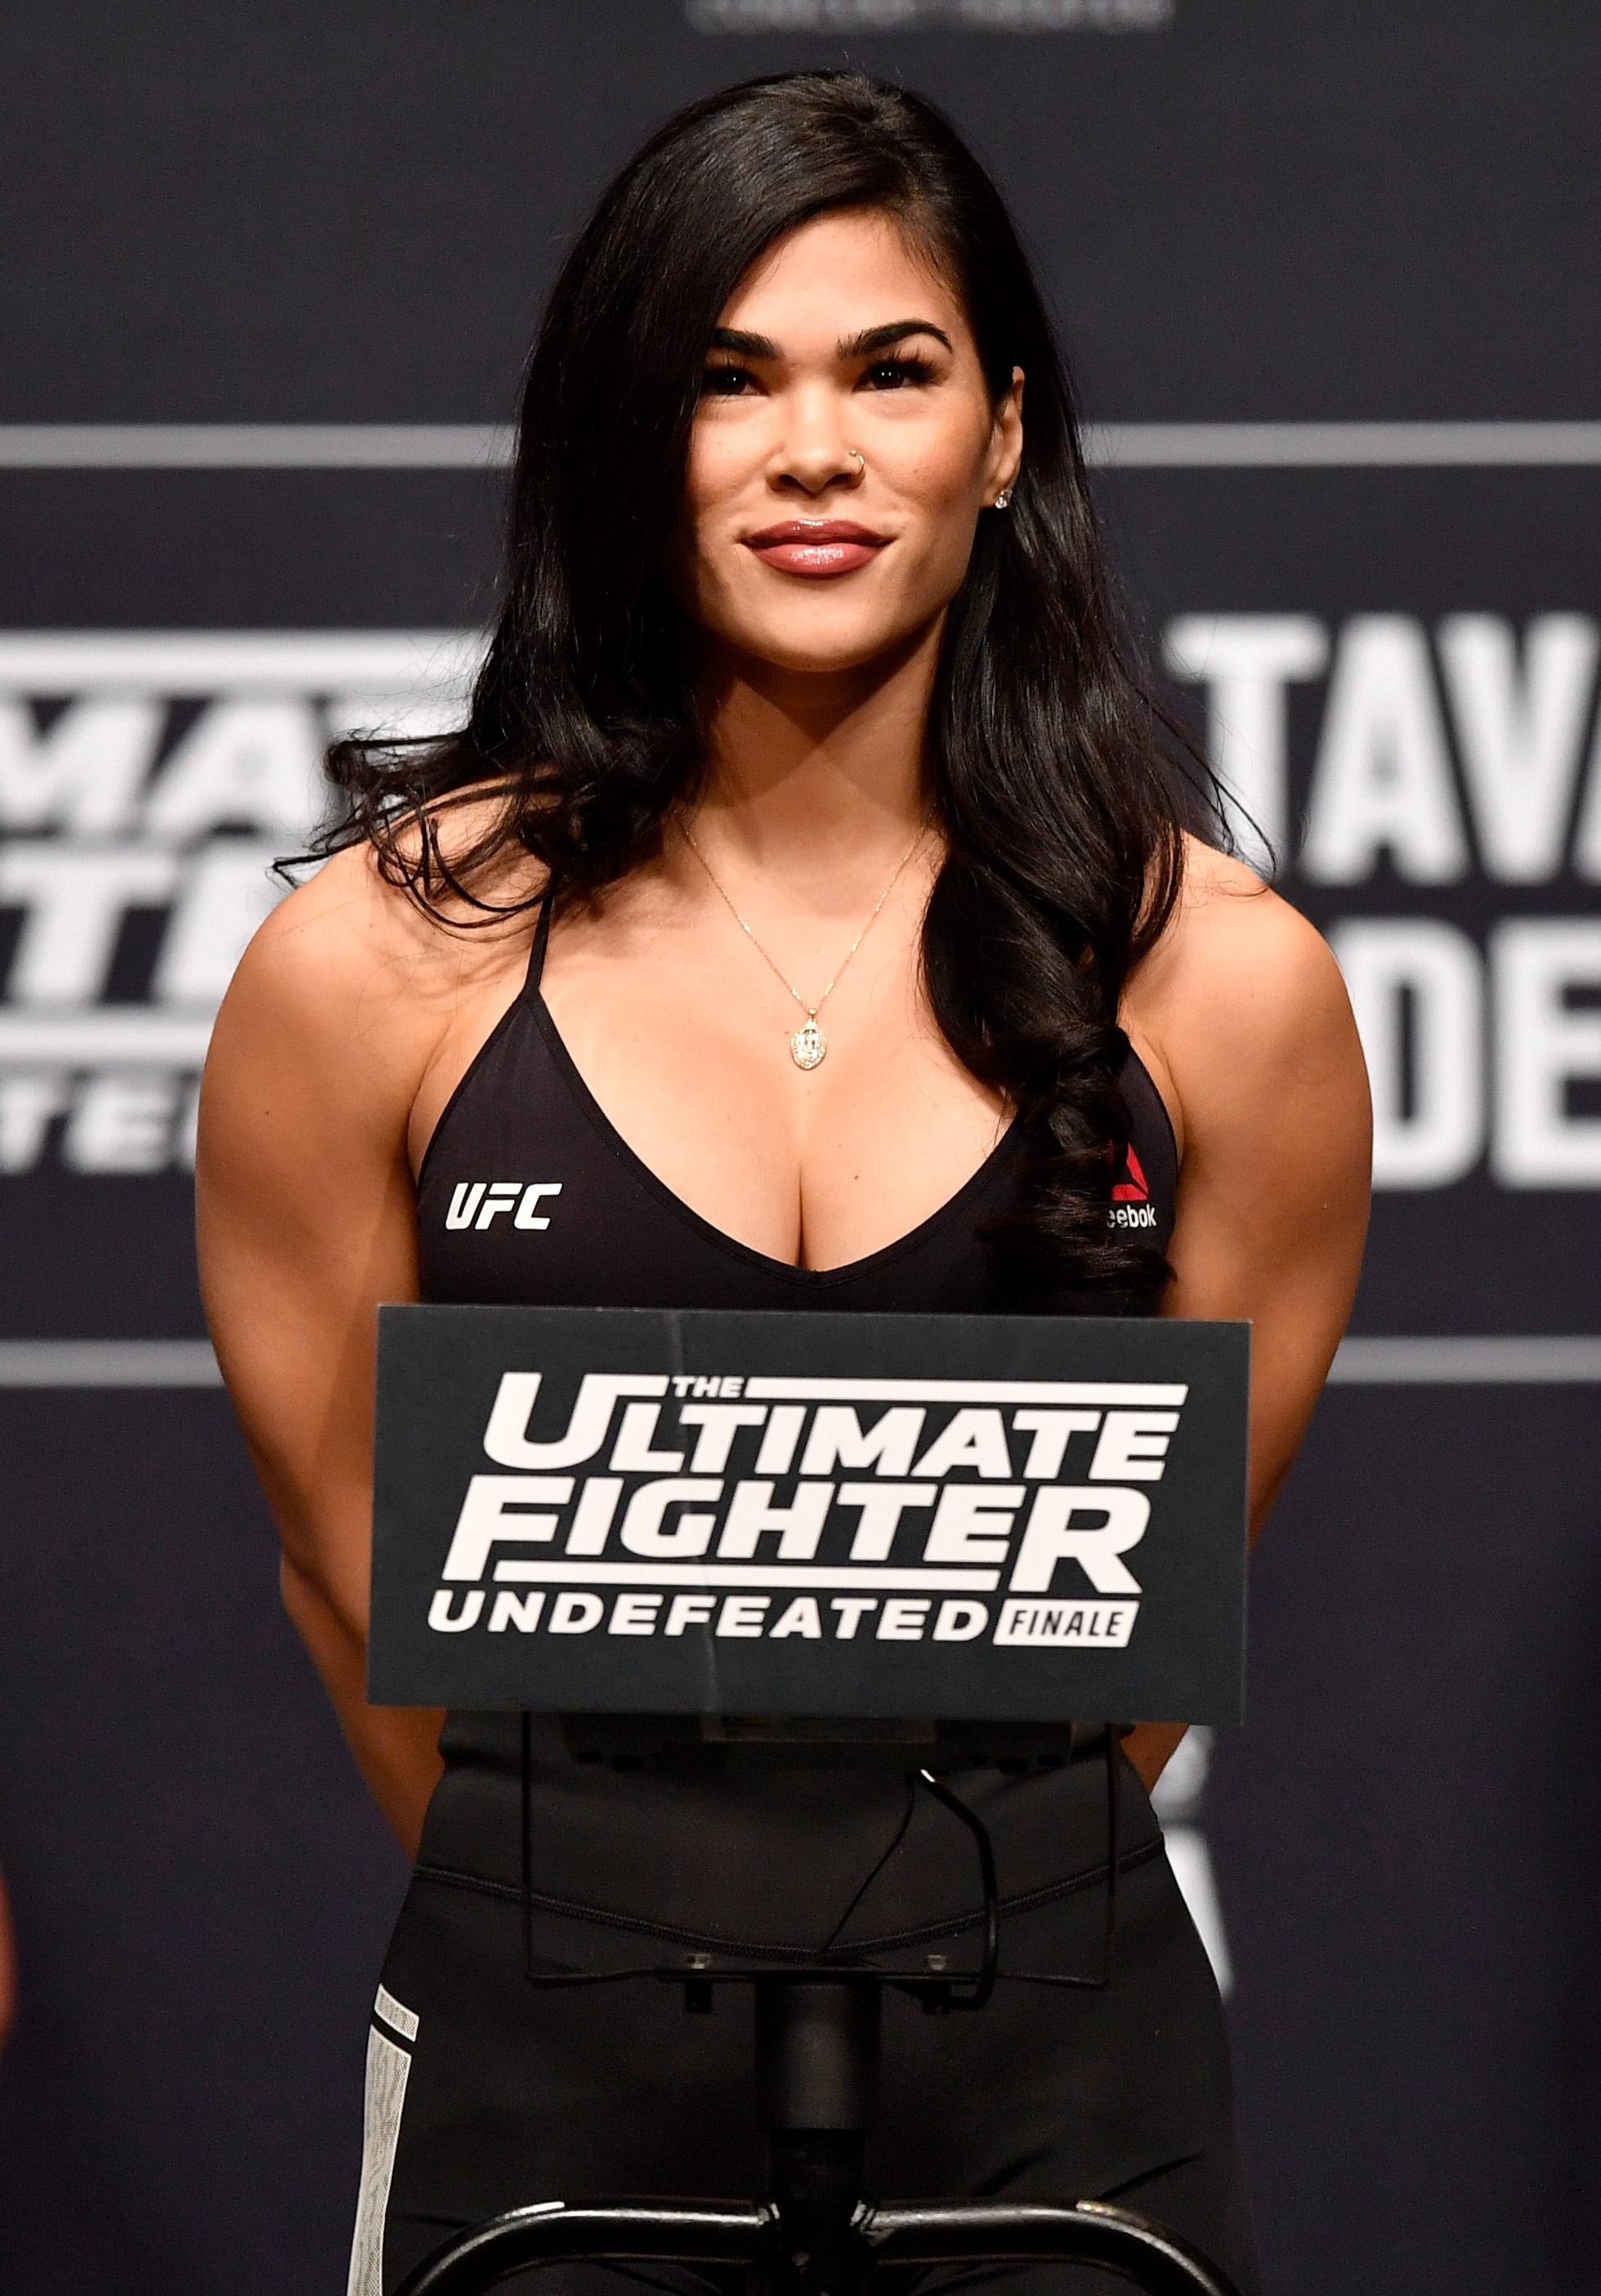 UFC star Rachael Ostovich has been rushed to hospital after being attacked in Hawaii